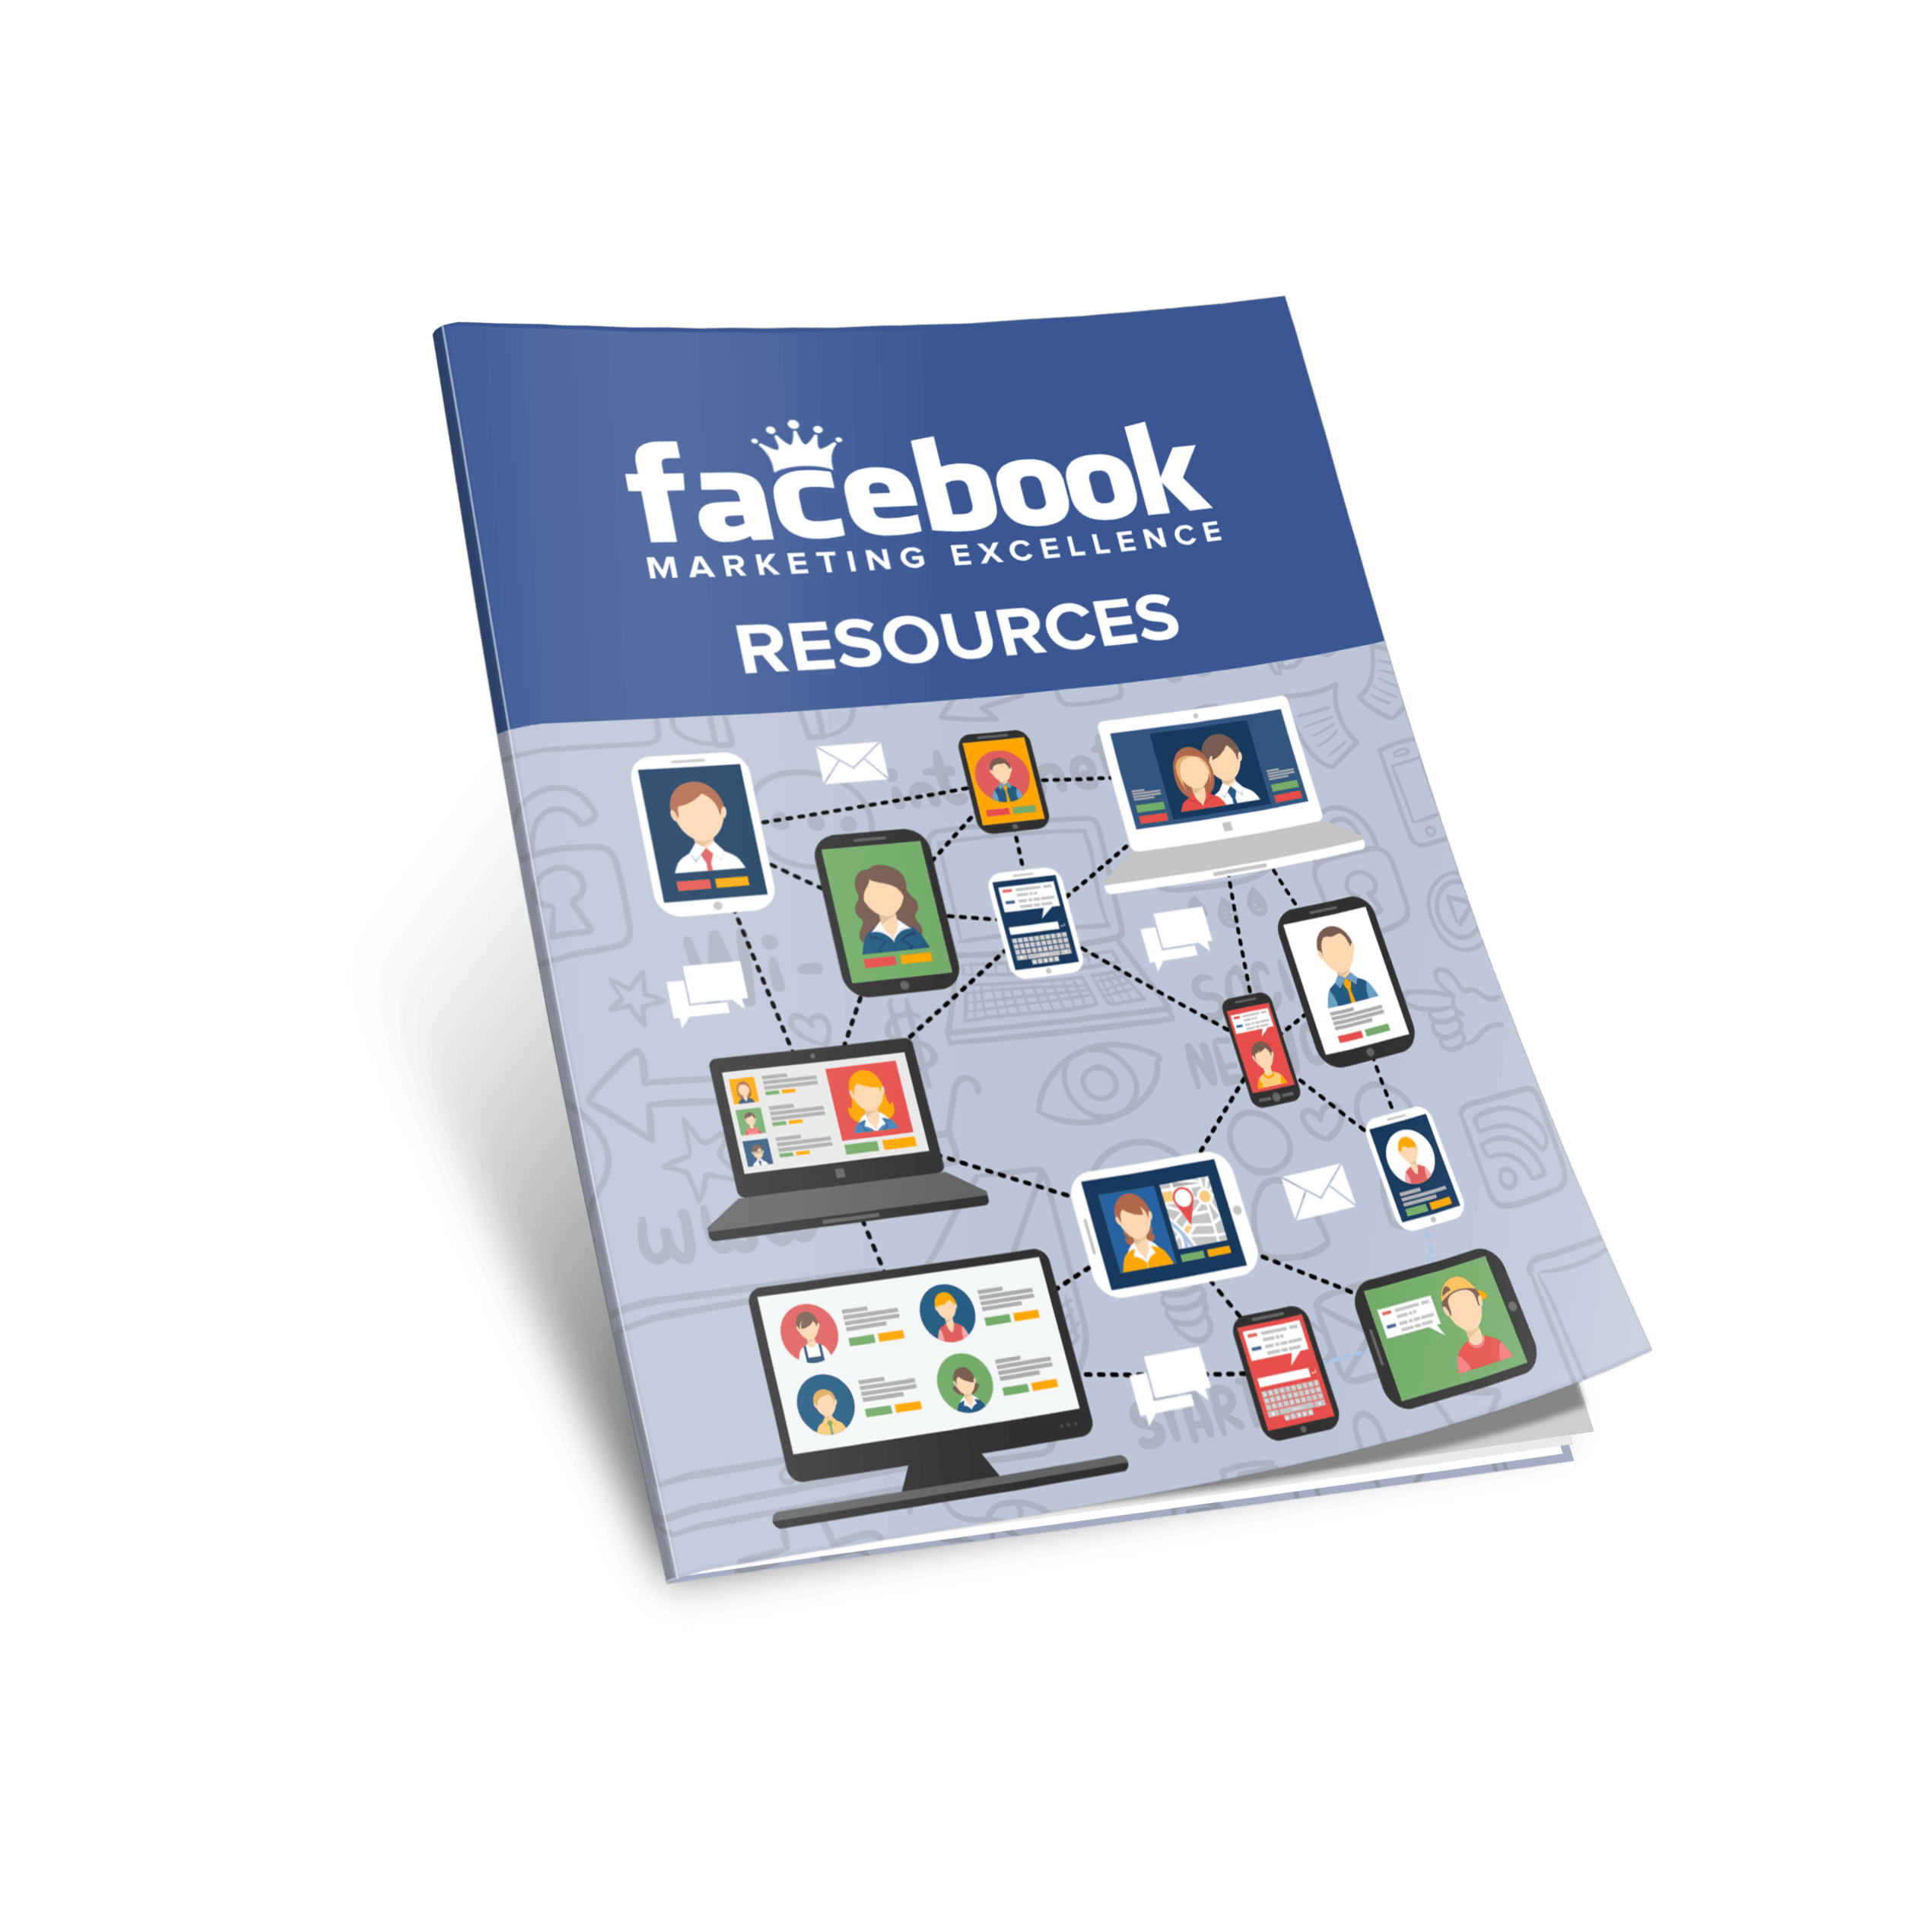 resources - Create Strong & Powerful Paid Ads Easily for Bing and Facebook